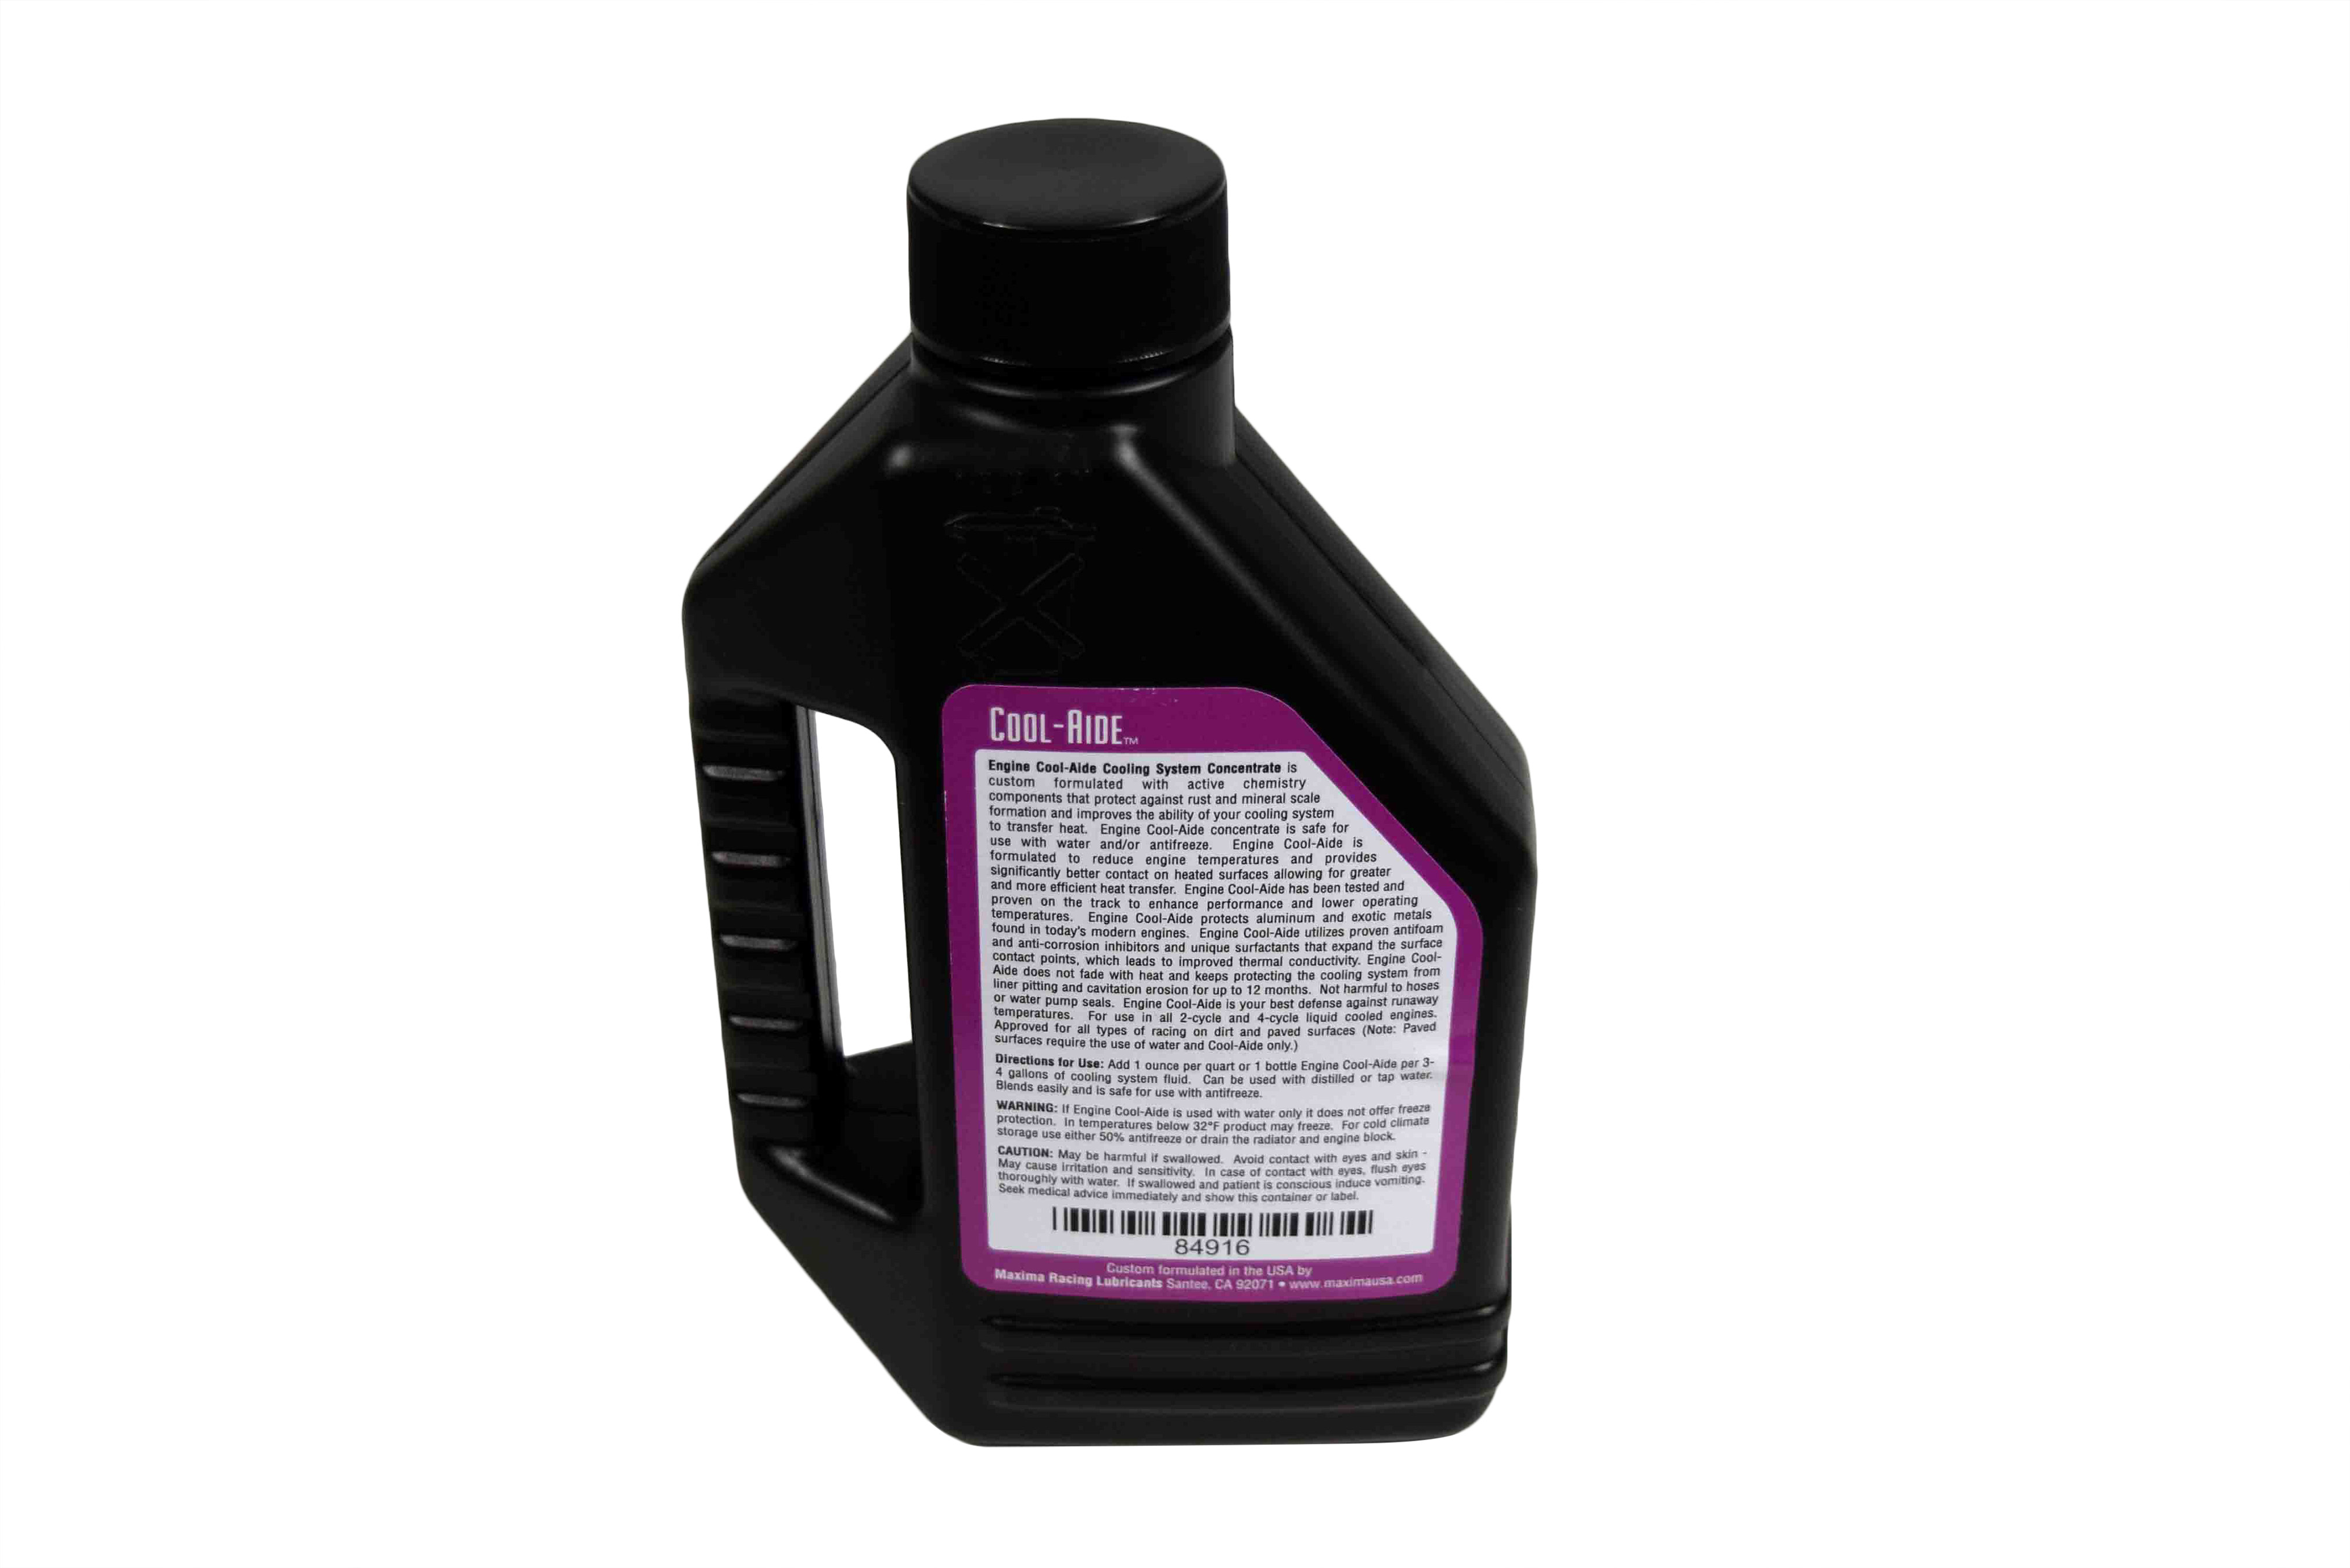 Maxima-84916-Cool-Aide-Concentrated-Coolant-16-oz.-Bottle-image-3